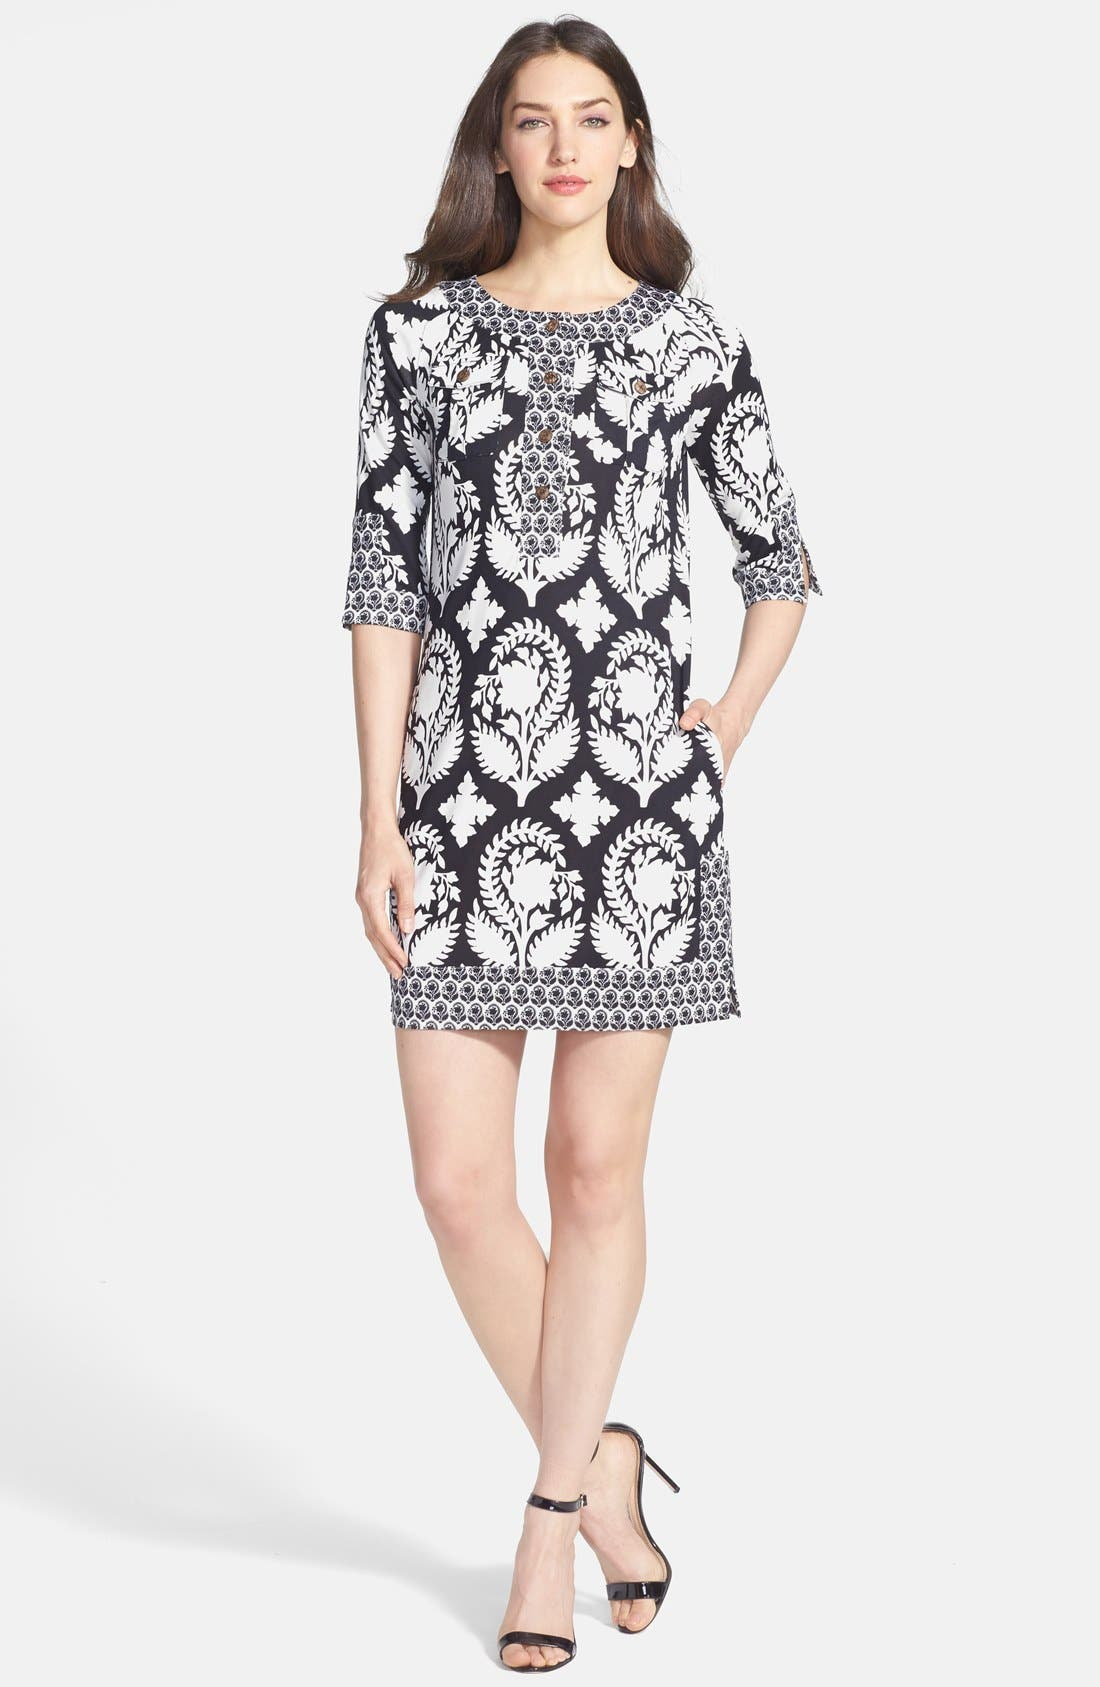 DIANE VON FURSTENBERG 'Eloise' Silk Knit Shift Dress, Main, color, 015